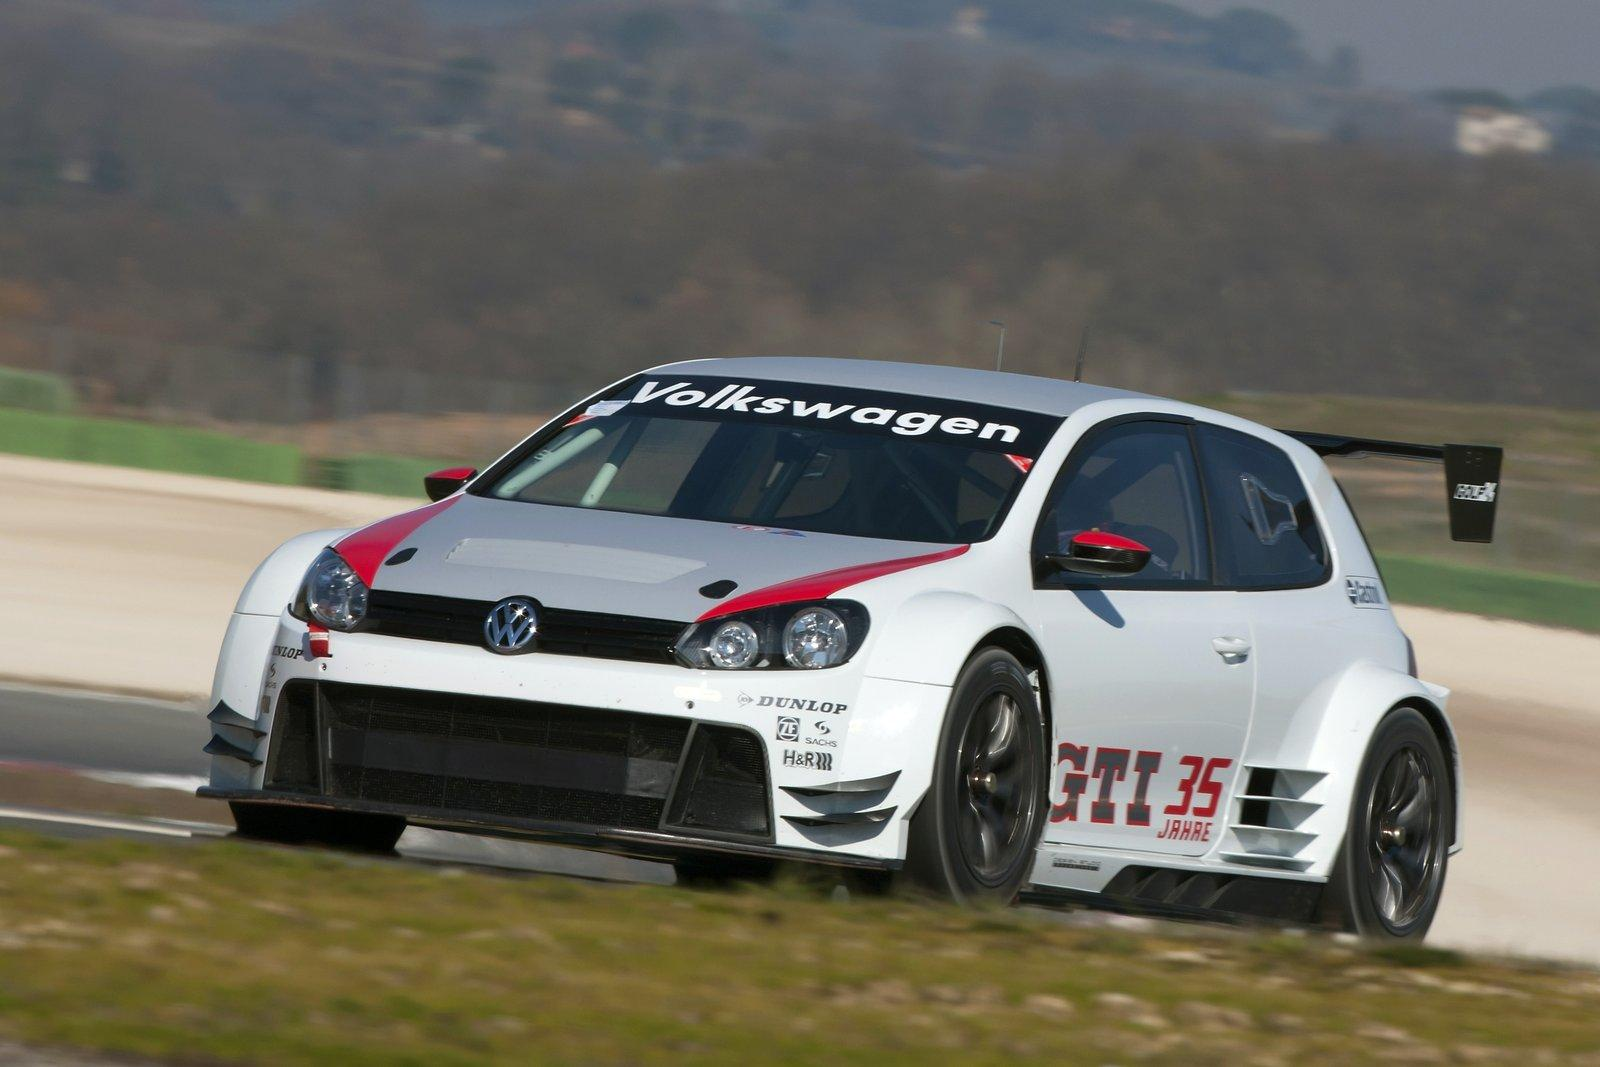 VW Racing pictures